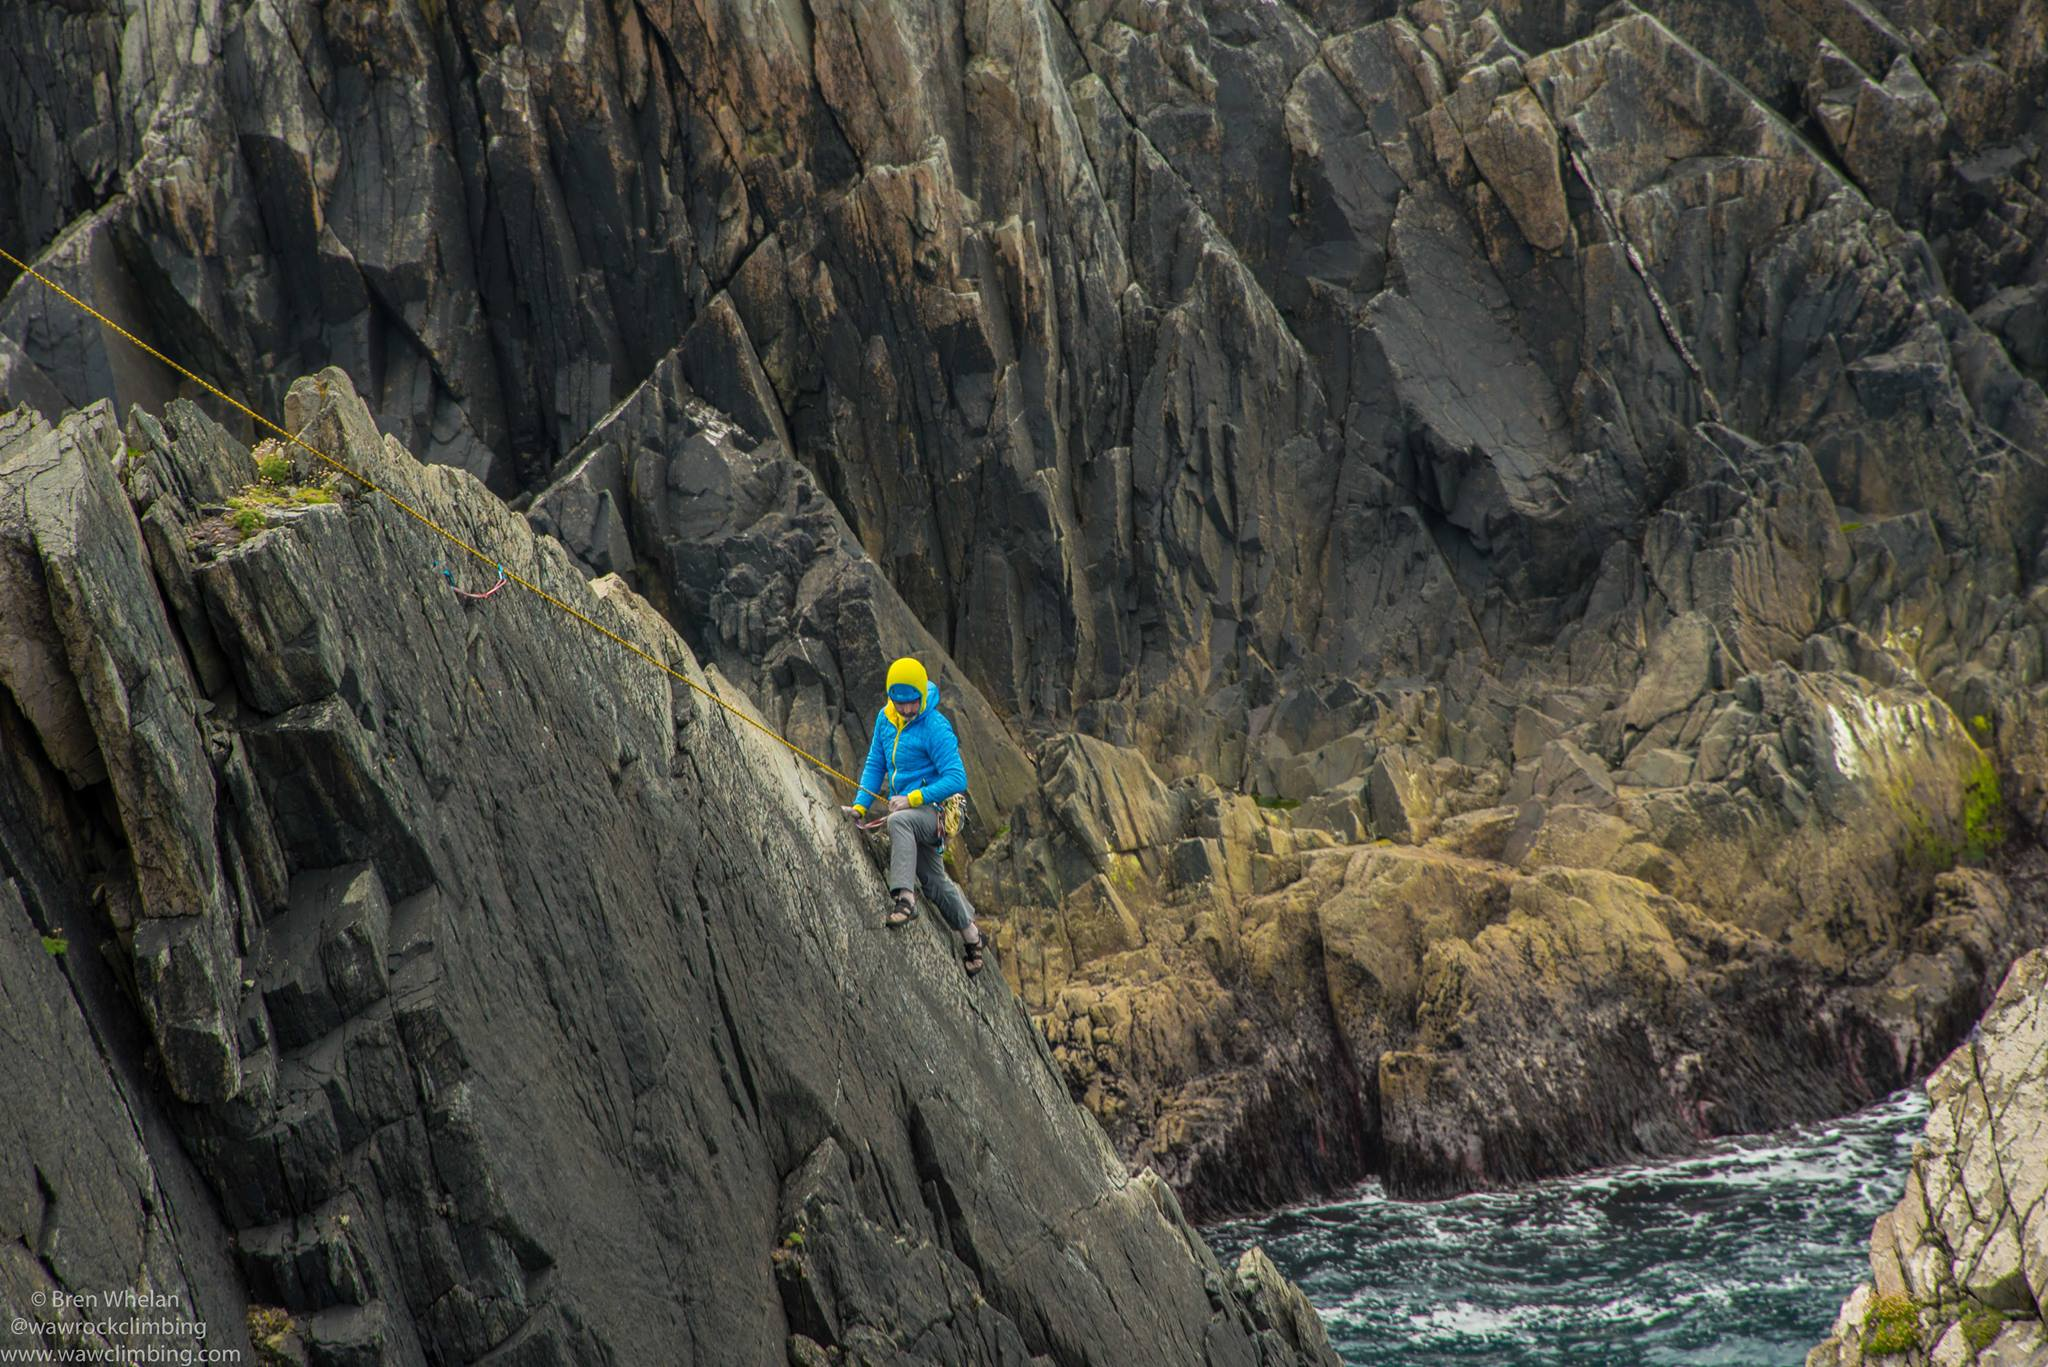 Donegal Climbing